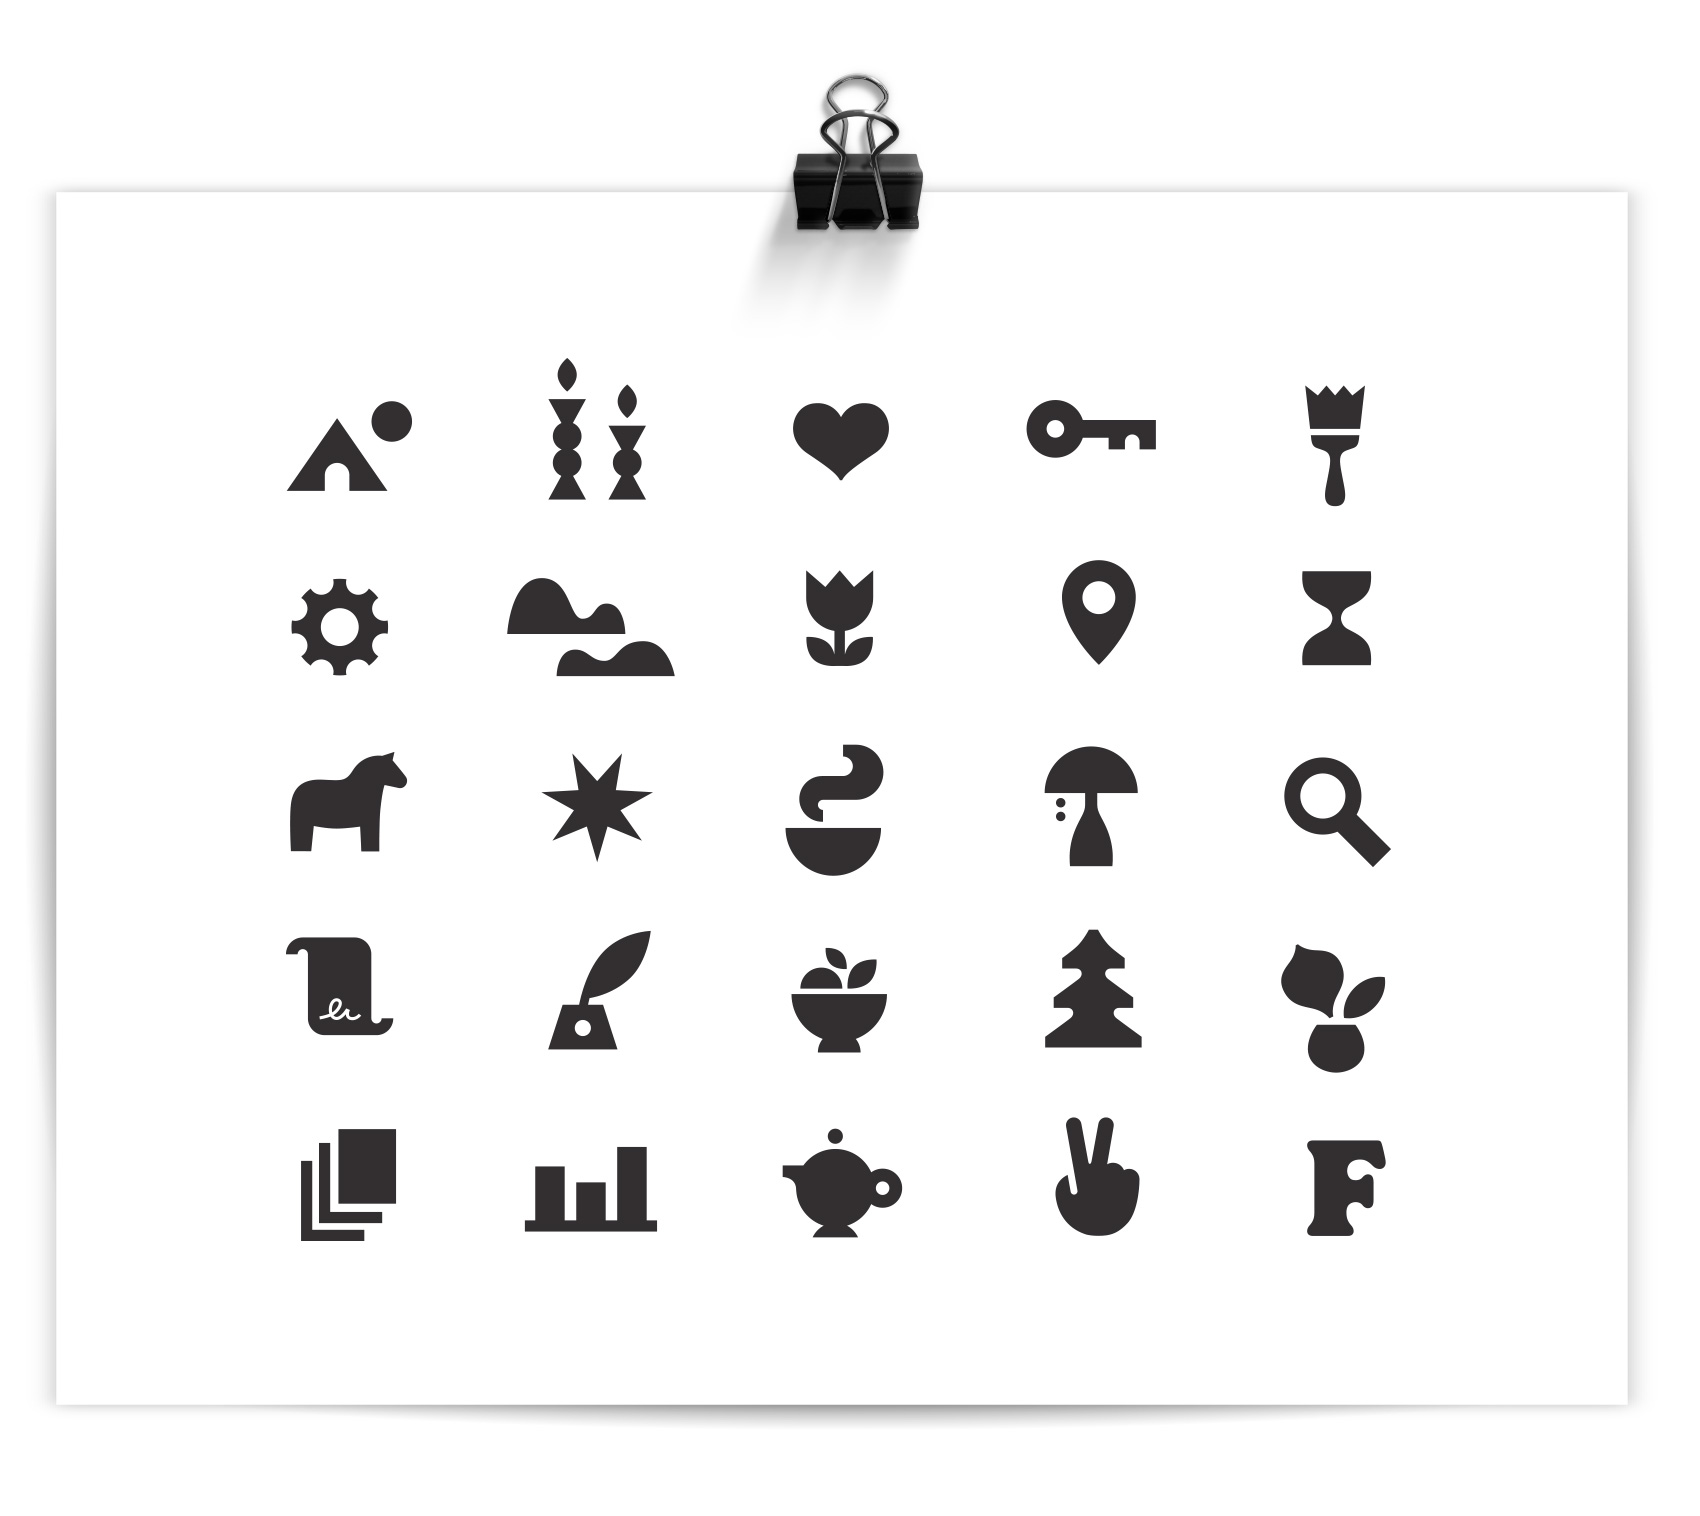 A series of simple and bold icons were created to add flair to an otherwise minimal brand look.